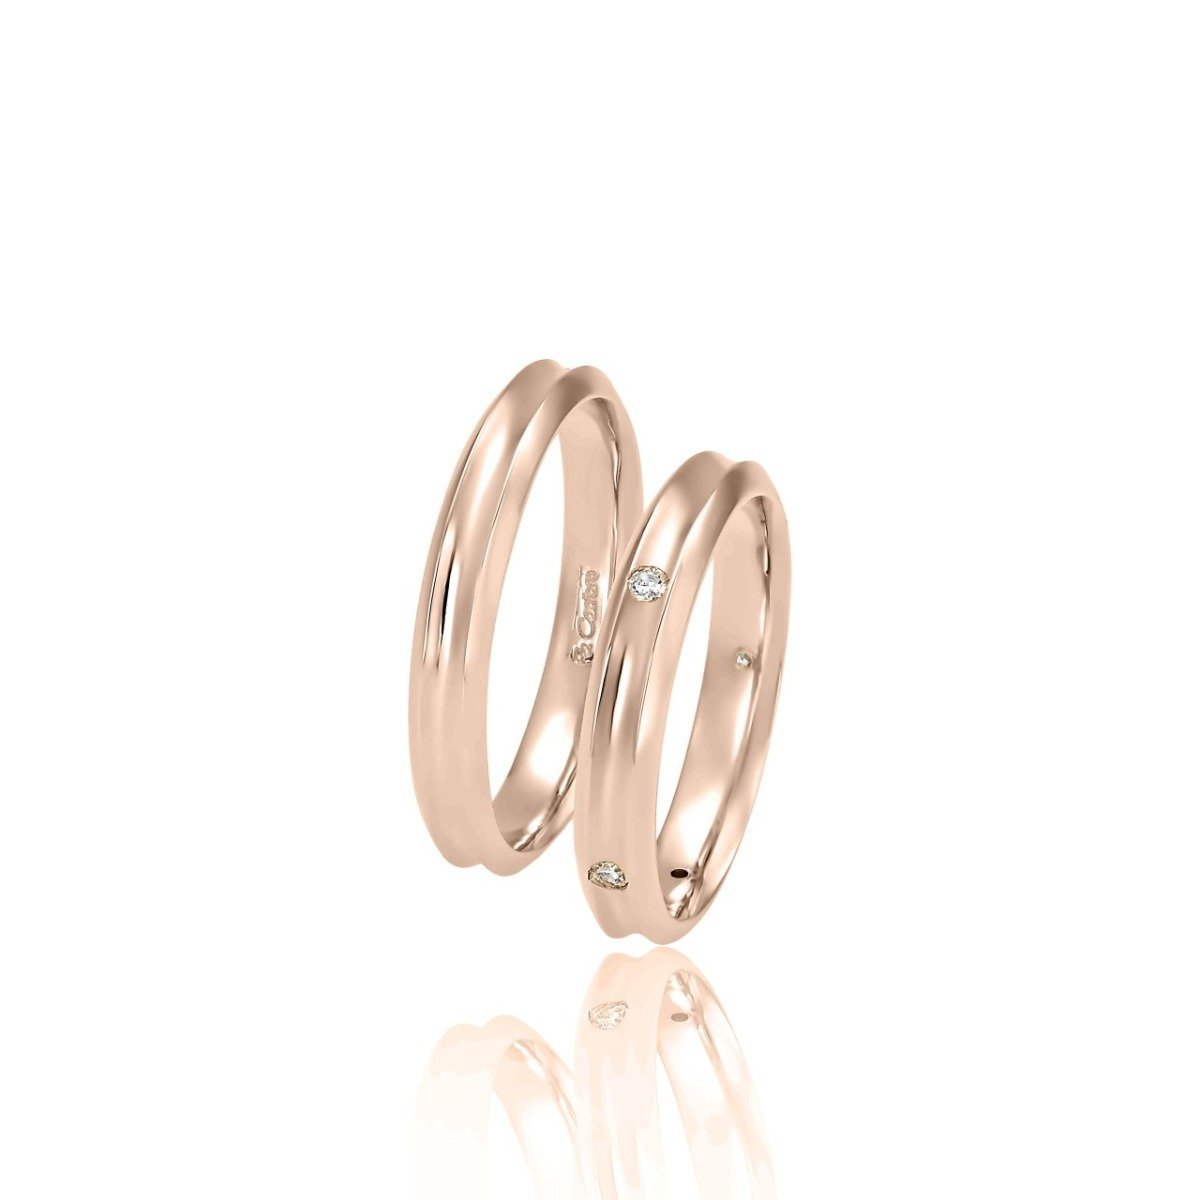 FaCad'oro WR-16 9ct and 14ct Gold Wedding Rings - Goldy Jewelry Store